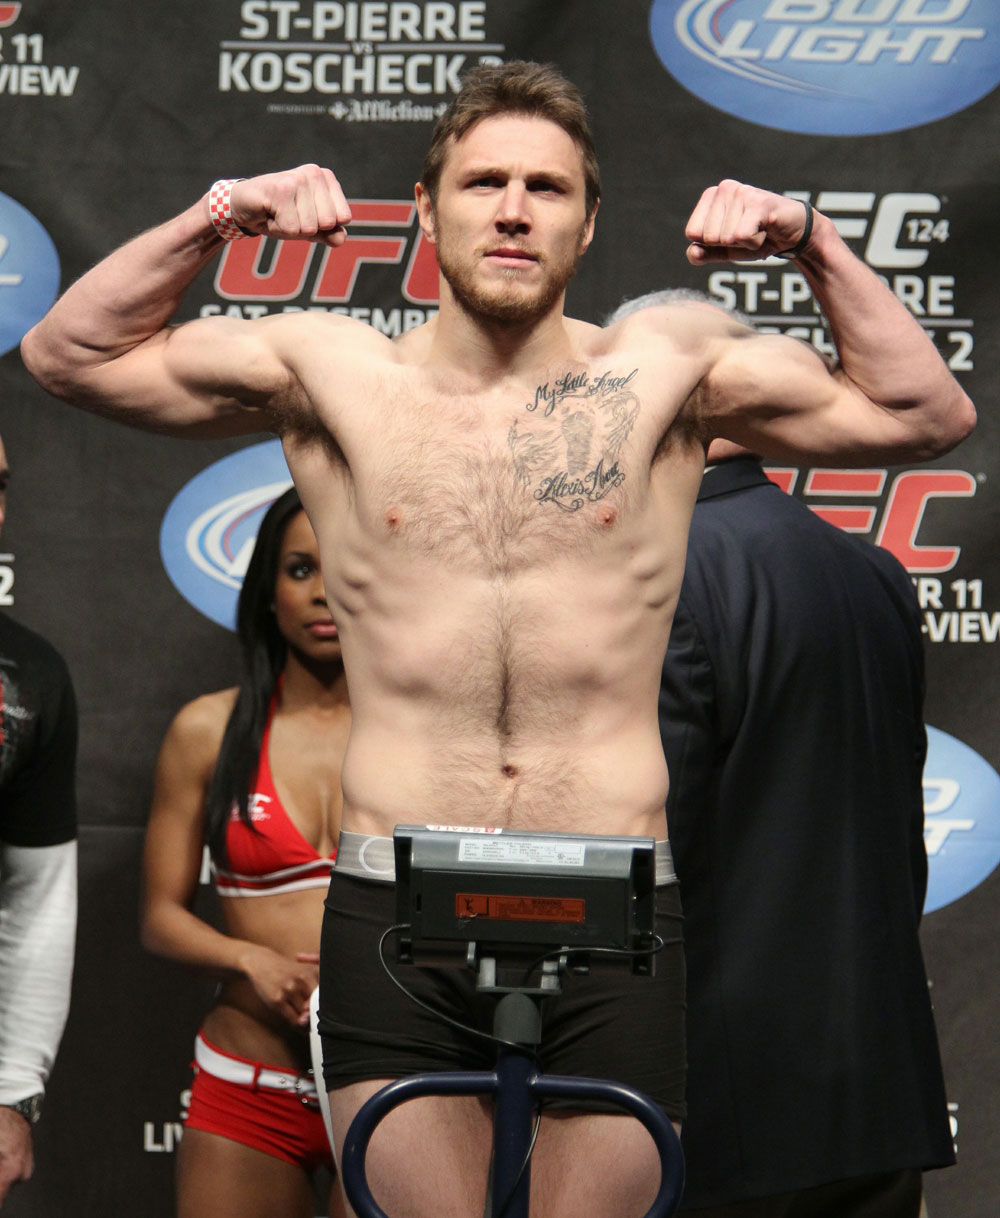 UFC 124 Weigh-in: Dan Miller weighs in at 184.5lbs.